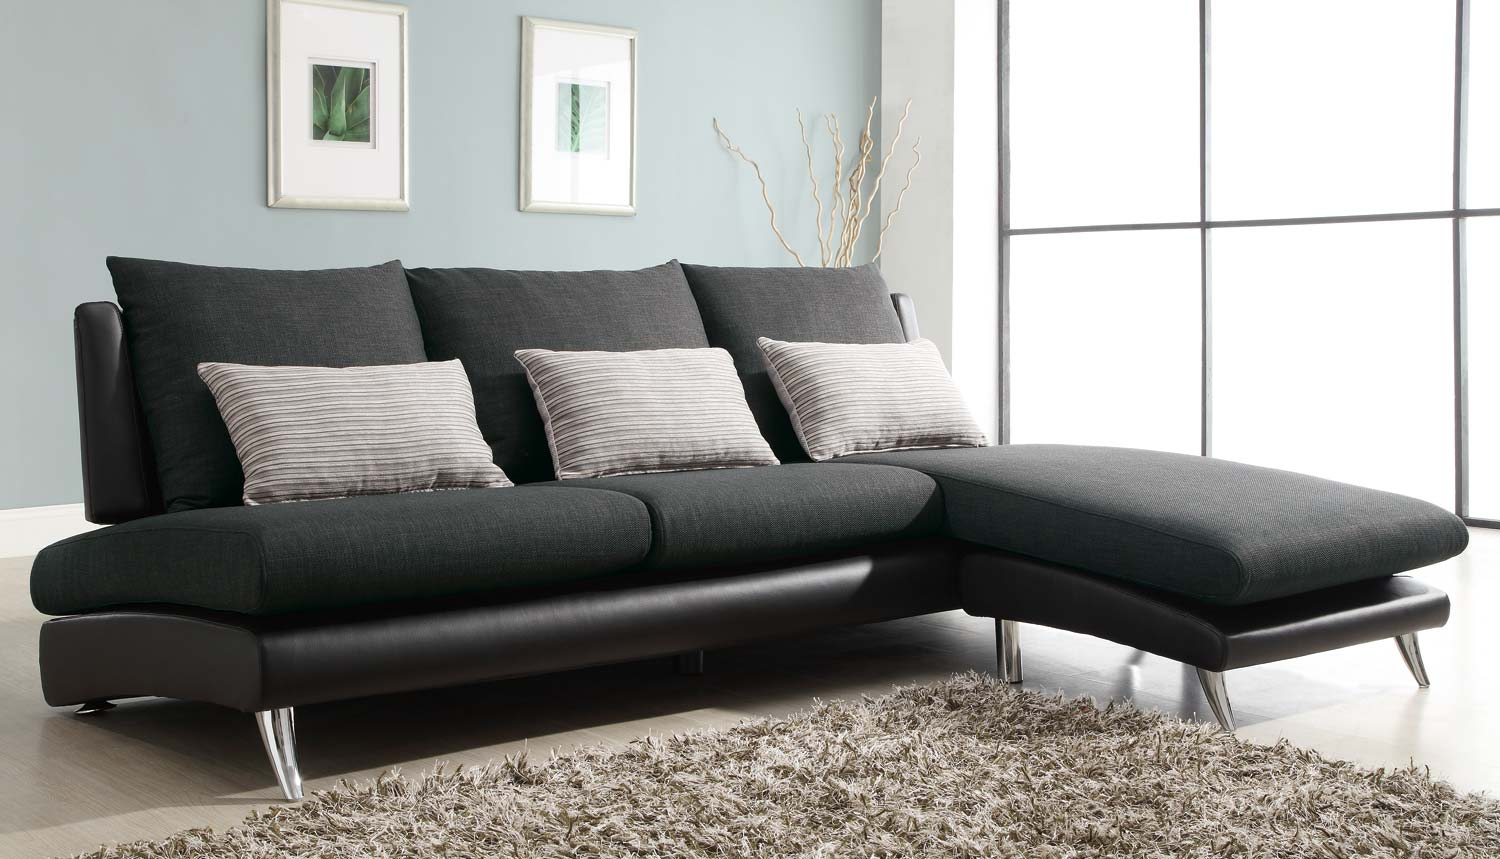 High Quality Homelegance Codman Reversible Sectional Sofa Chaise   Dark Grey   Polyester  And Black Vinyl